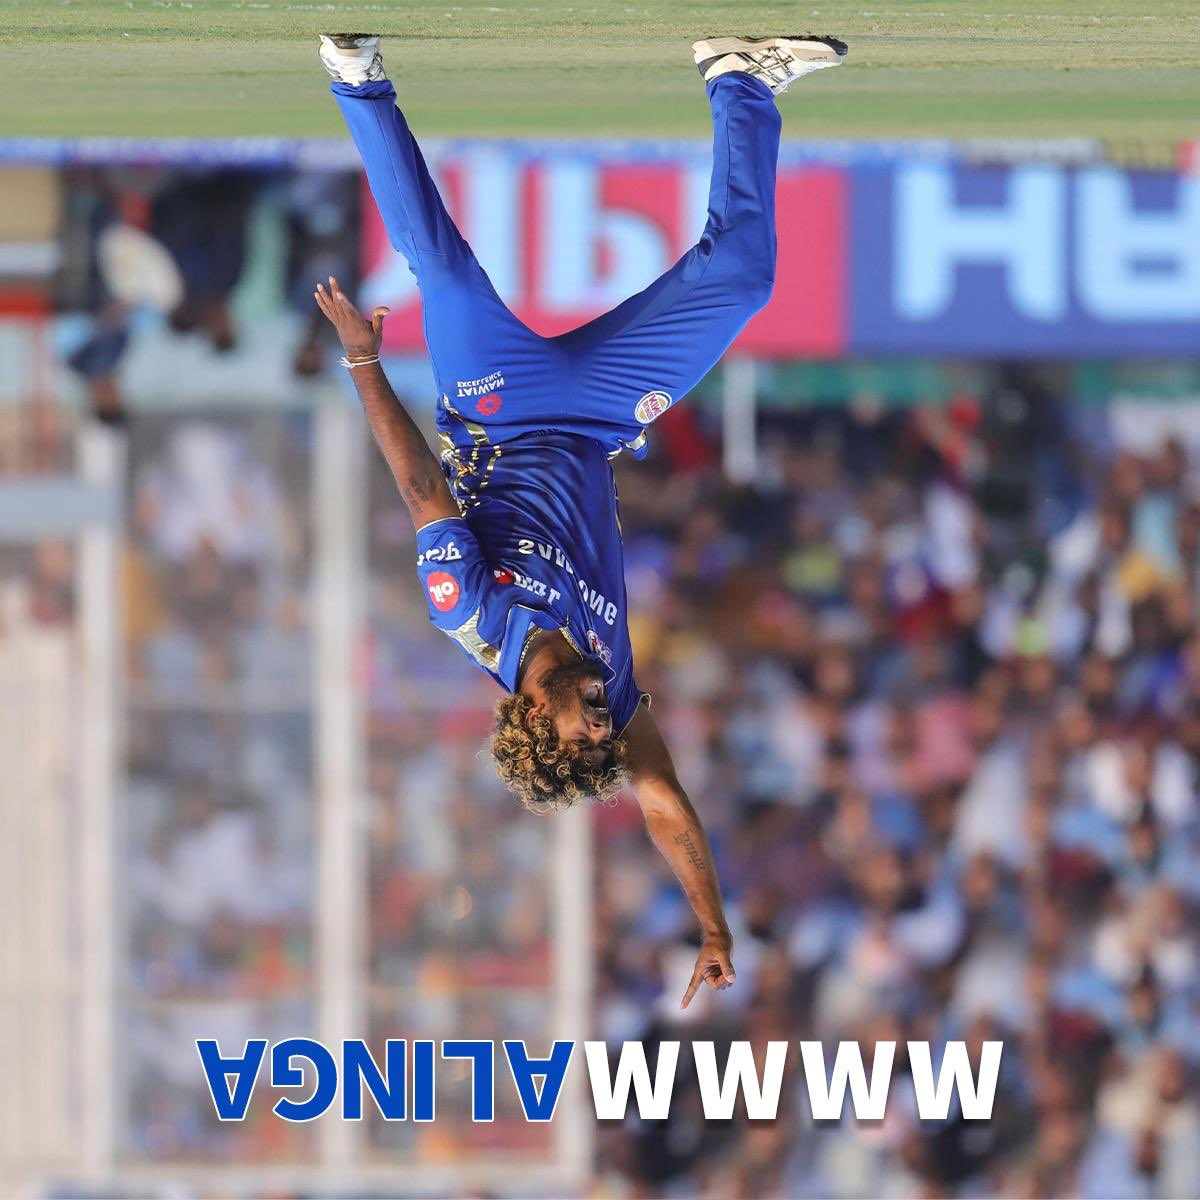 Turn yourupside down to see some Mali magic   #OneFamily #CricketMeriJaan #SLvNZ <br>http://pic.twitter.com/jZ4OAwFmGx